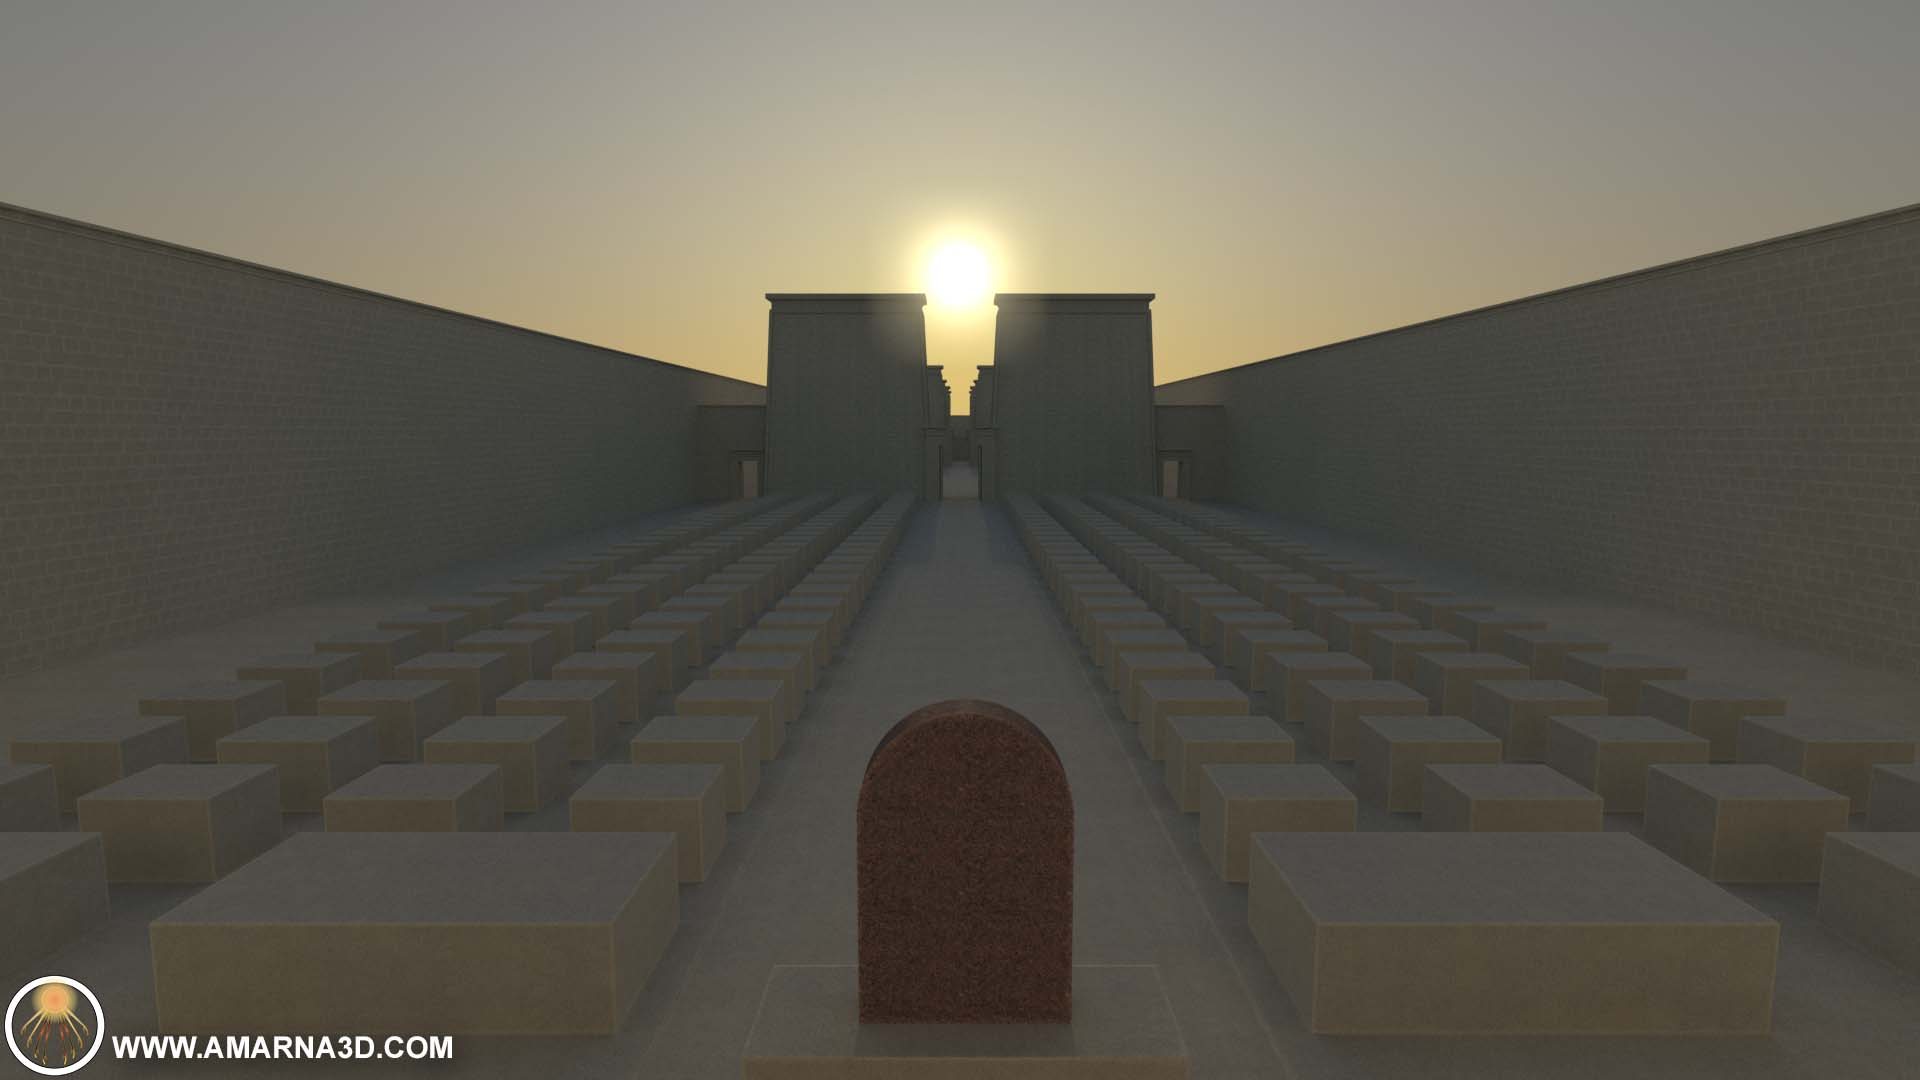 Sunlight Study for the Great Aten Temple - AMARNA:3D